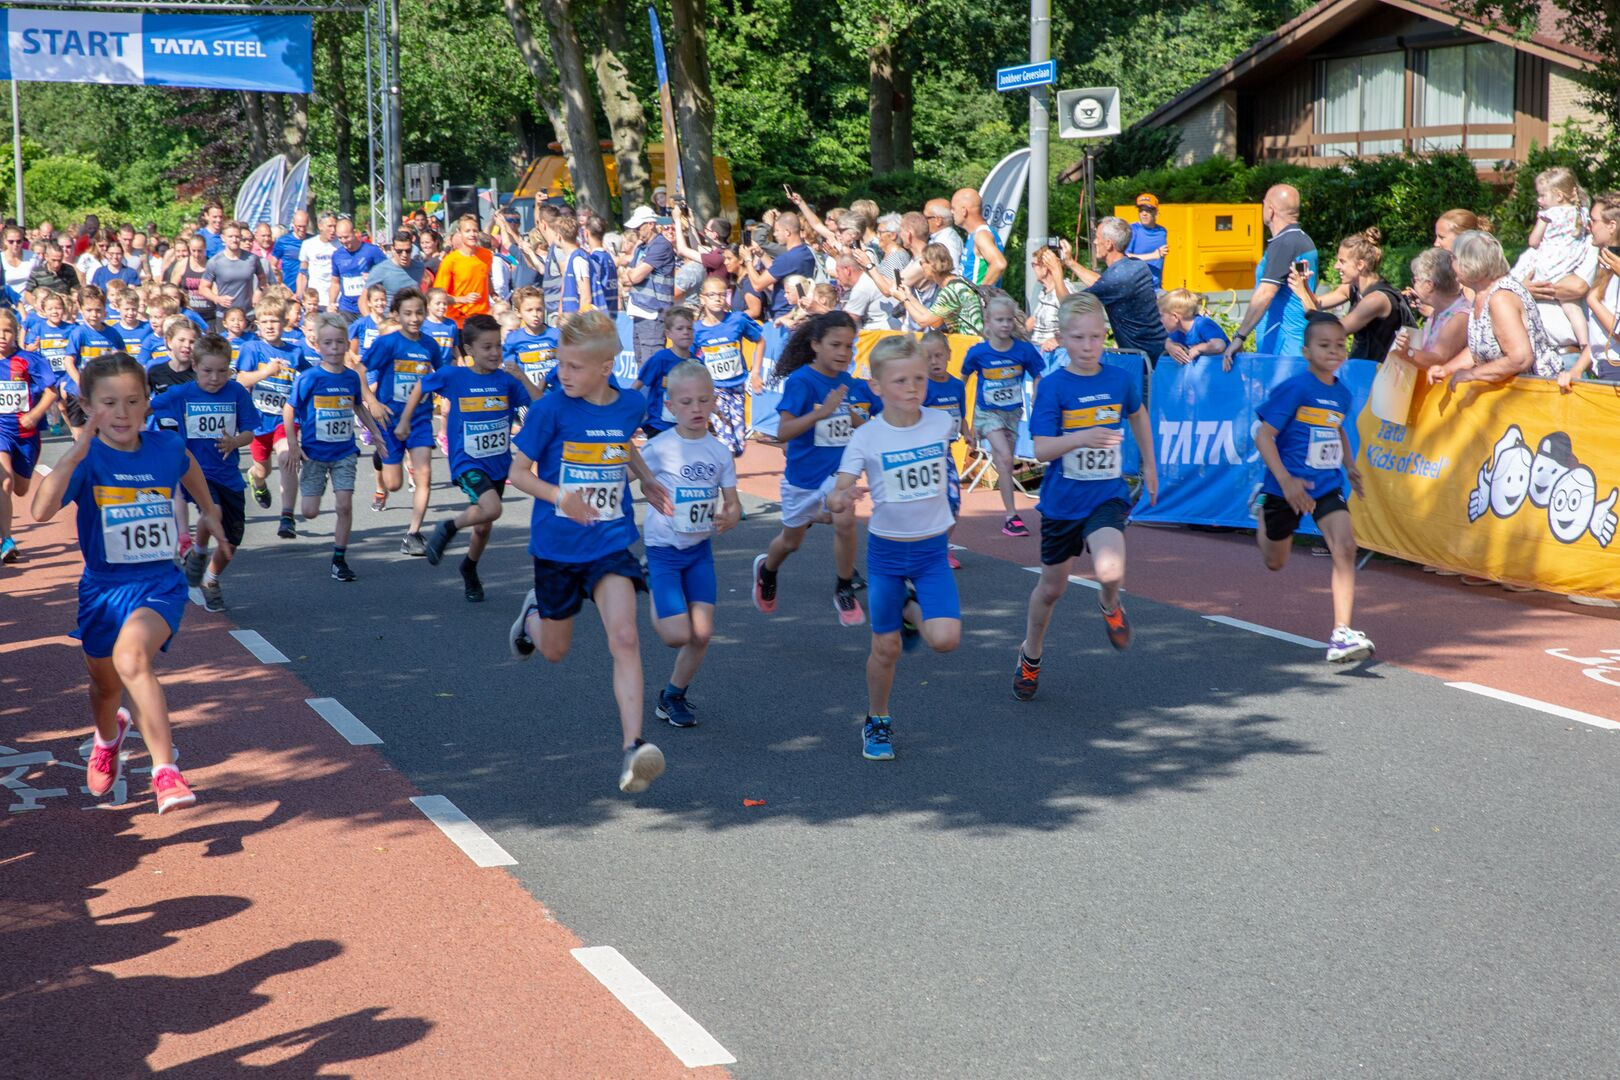 Tata Steel sponsored run 2019